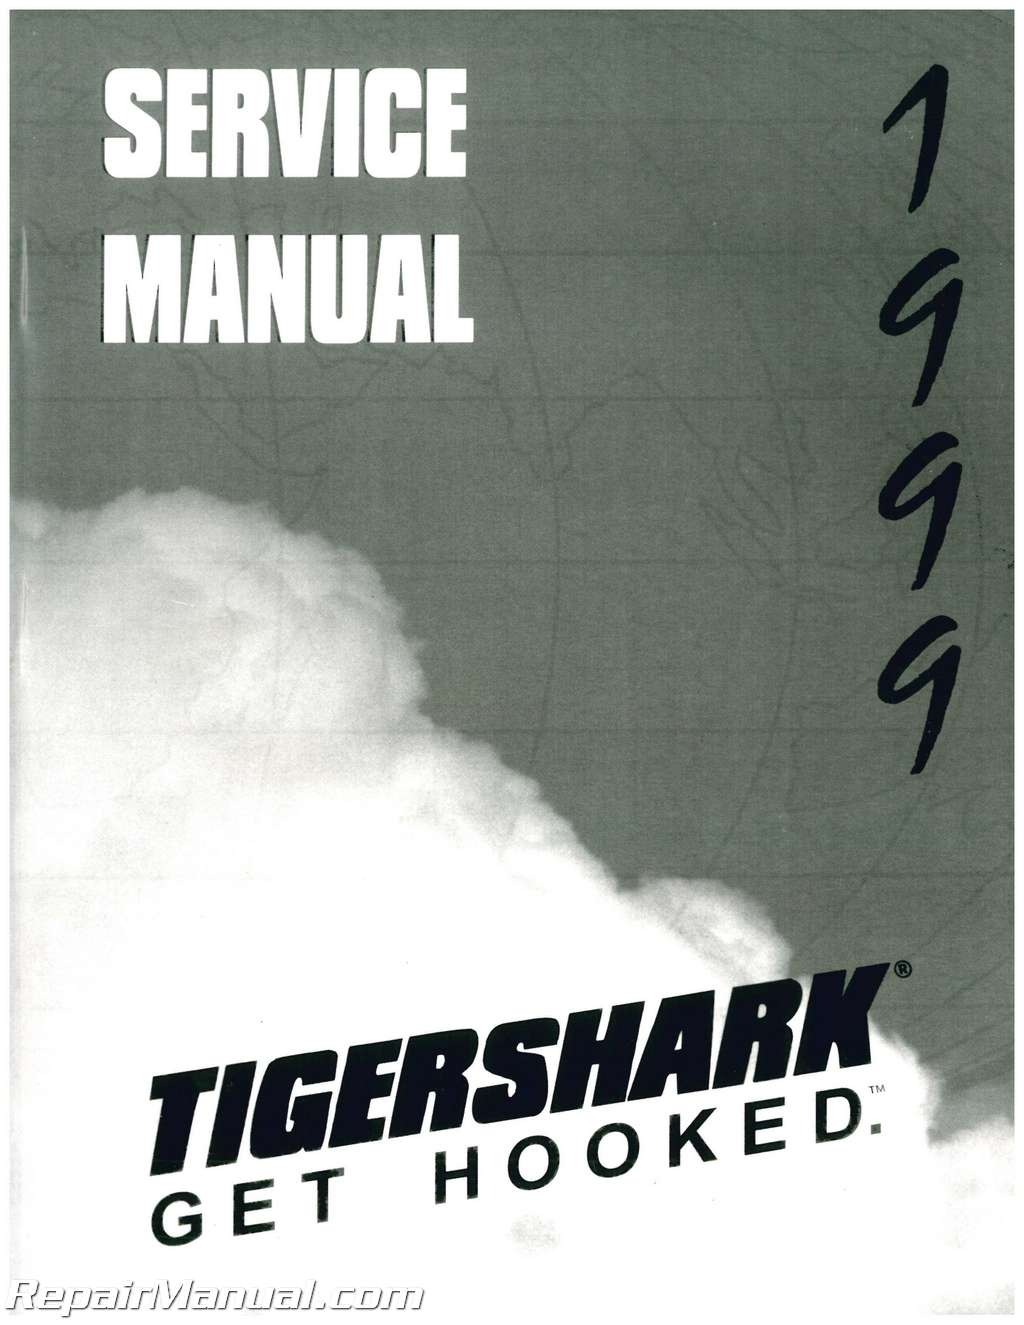 Tigershark Daytona Manual Auto Electrical Wiring Diagram 1995 Chrysler Lebaron Fuse Schematic 1999 Service